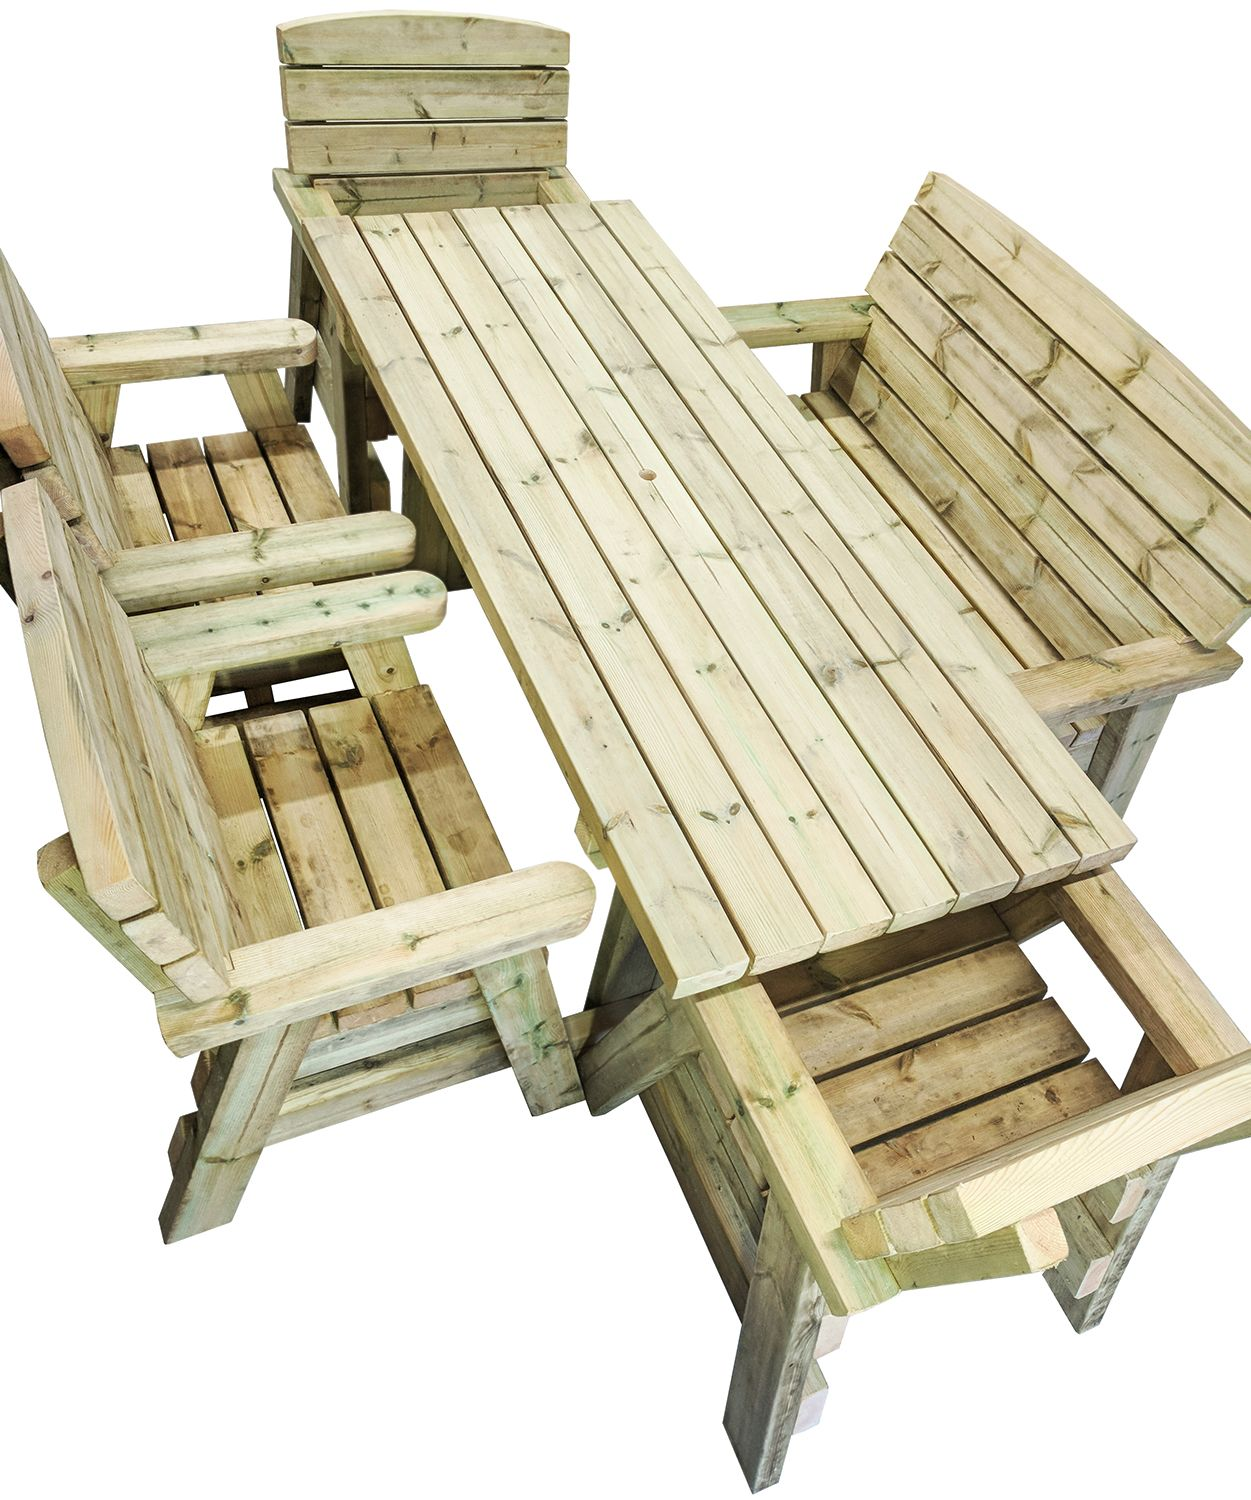 six-seater outdoor dining set with four chairs and a bench